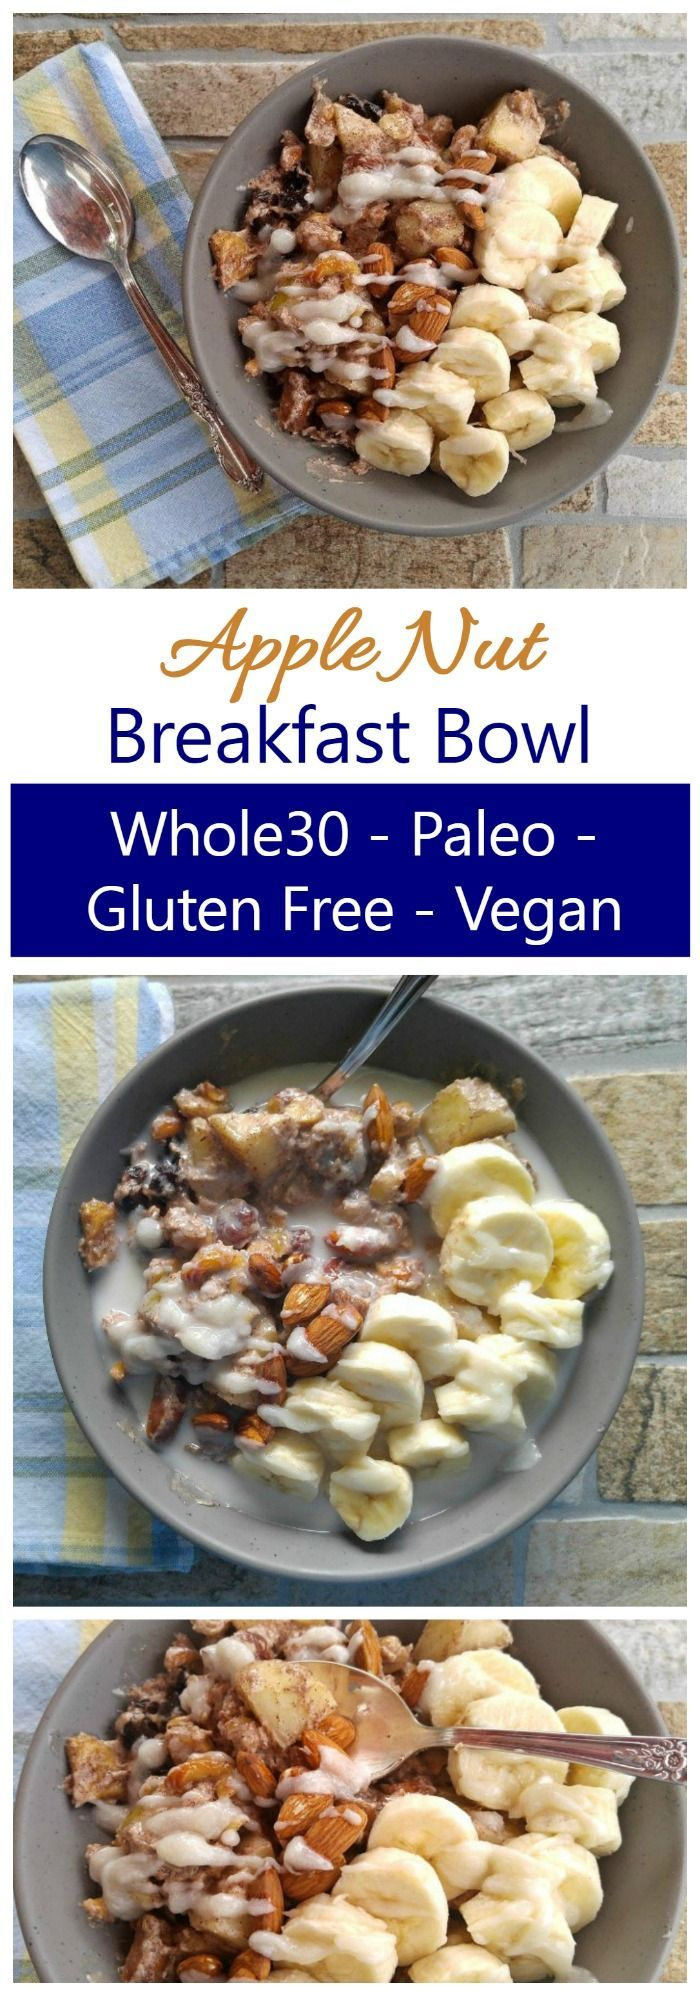 Breakfast Bowl - Paleo Gluten Free Breakfast Recipe without Eggs This Whole30 Breakfast Bowl is a warm bowl of healthy ingredients. It's also Paleo, Vegan, Dairy Free and Gluten Free. So filling and tasty!This Whole30 Breakfast Bowl is a warm bowl of healthy ingredients. It's also Paleo, Vegan, Dairy Free and Gluten Free. So filling and tasty!